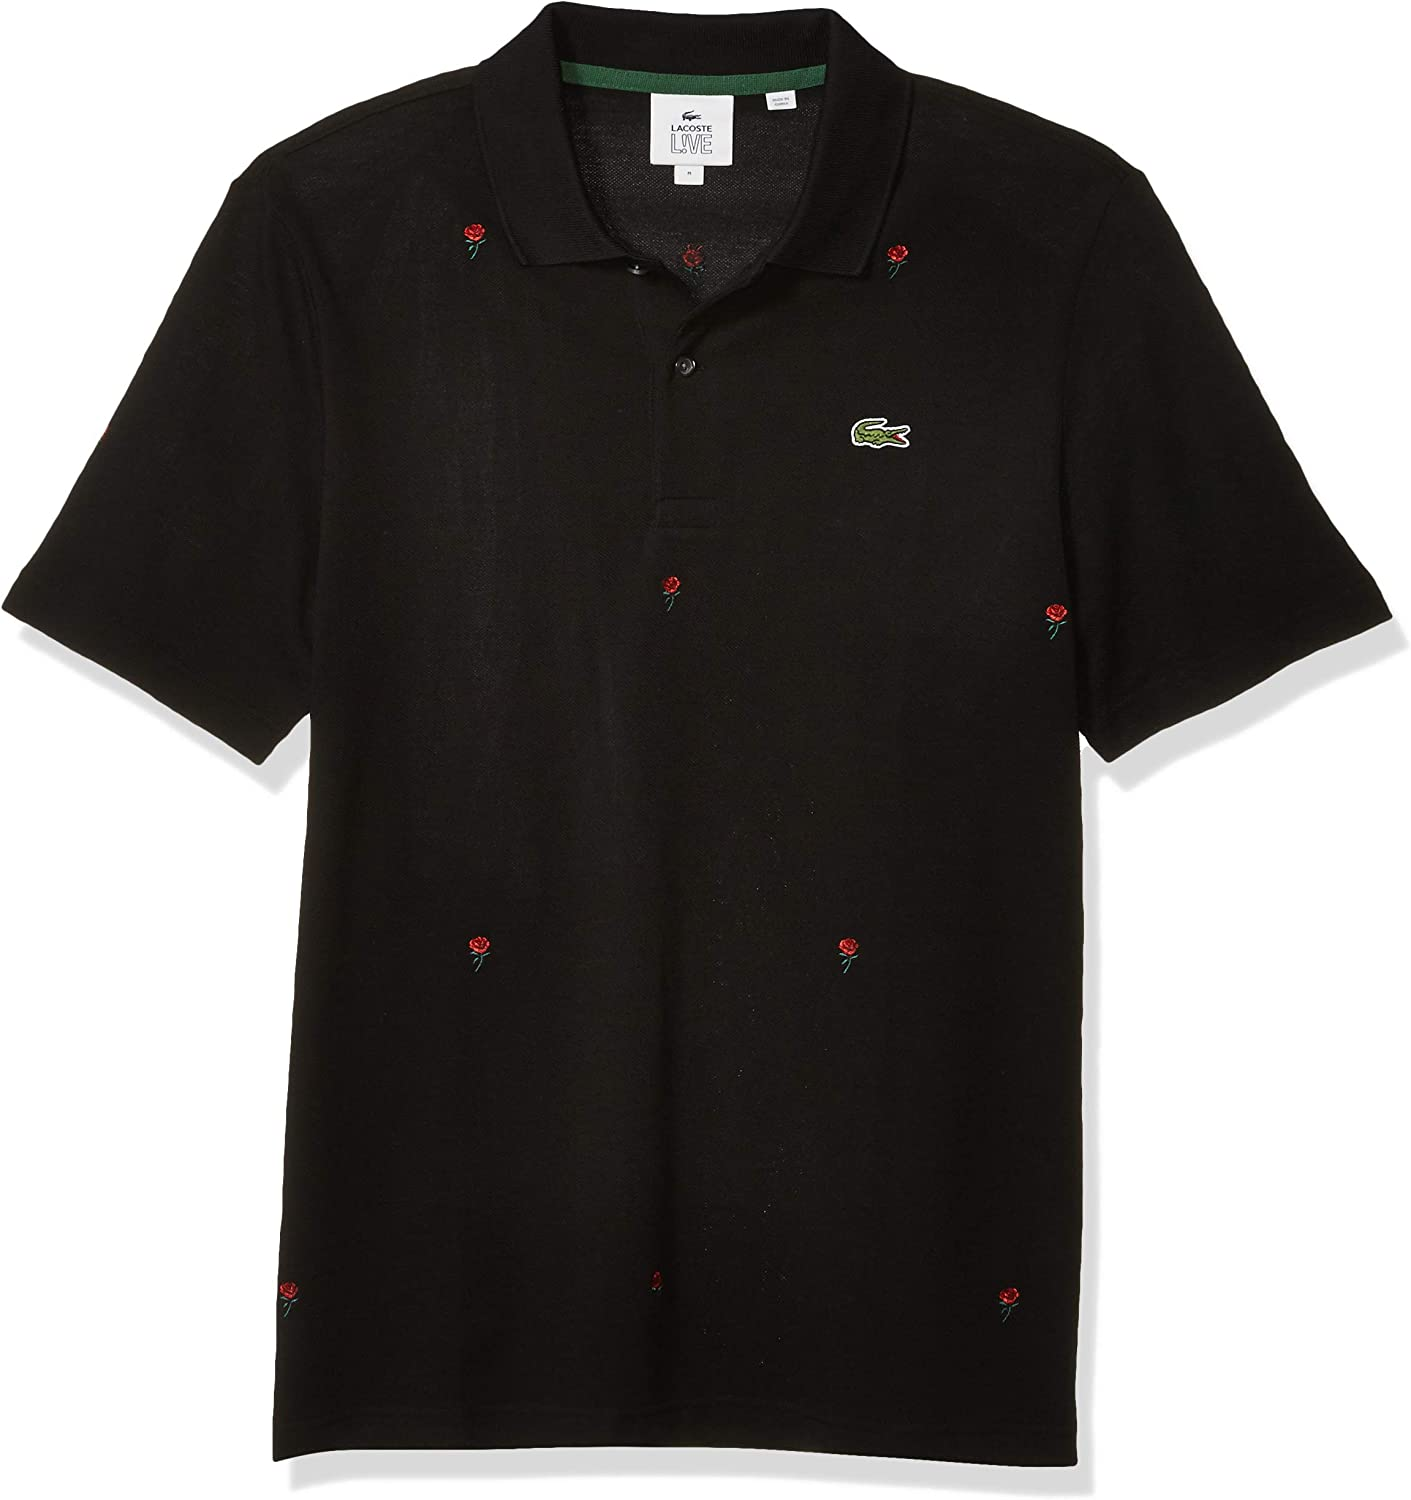 Lacoste Mens Long Sleeve Lve Printed Polo Inspired Sweater